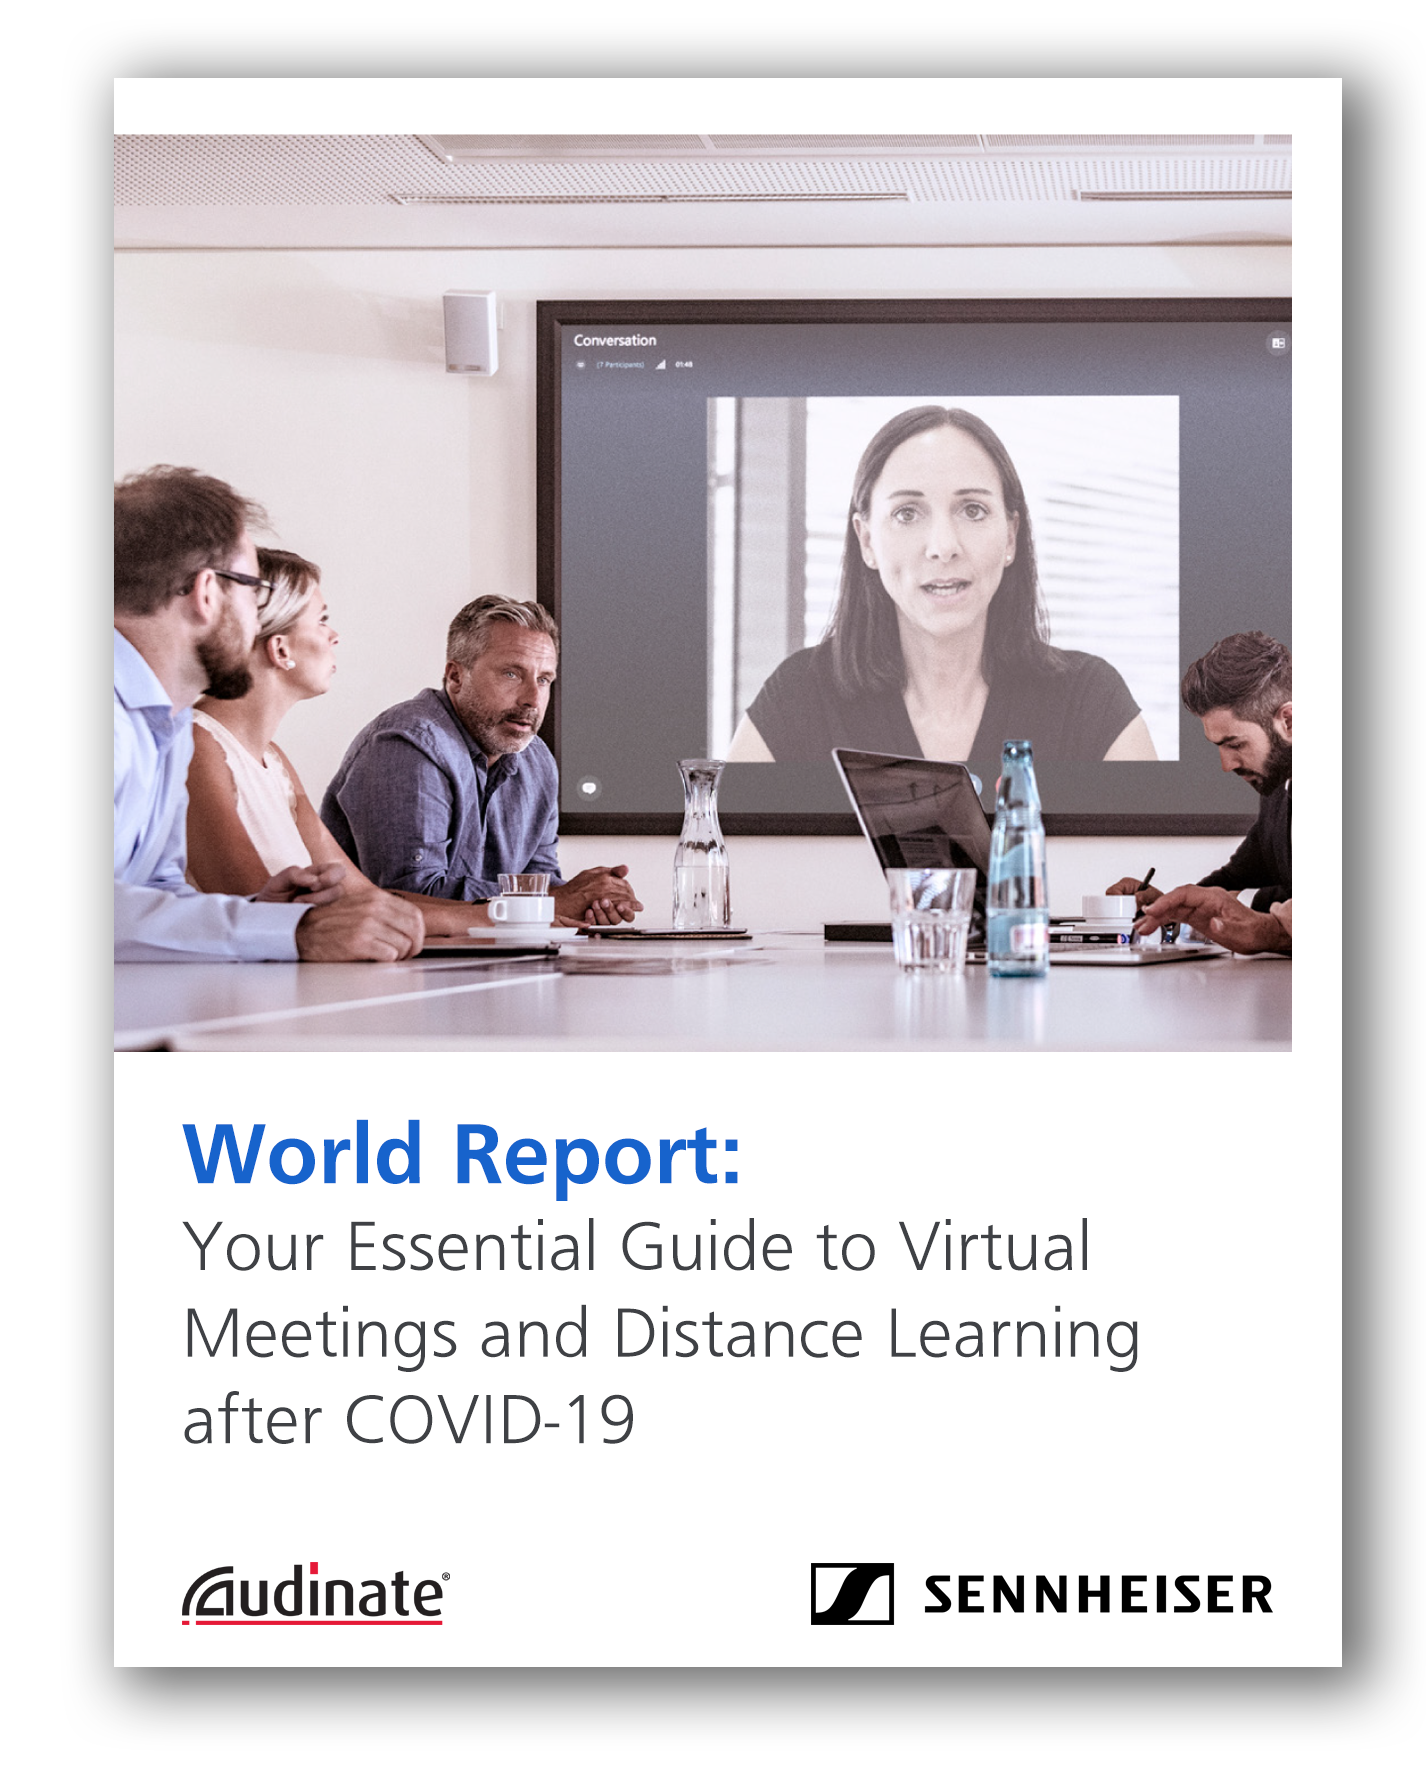 White Paper: World Report: Your Essential Guide to Virtual Meetings and Distance Learning after Covid-19